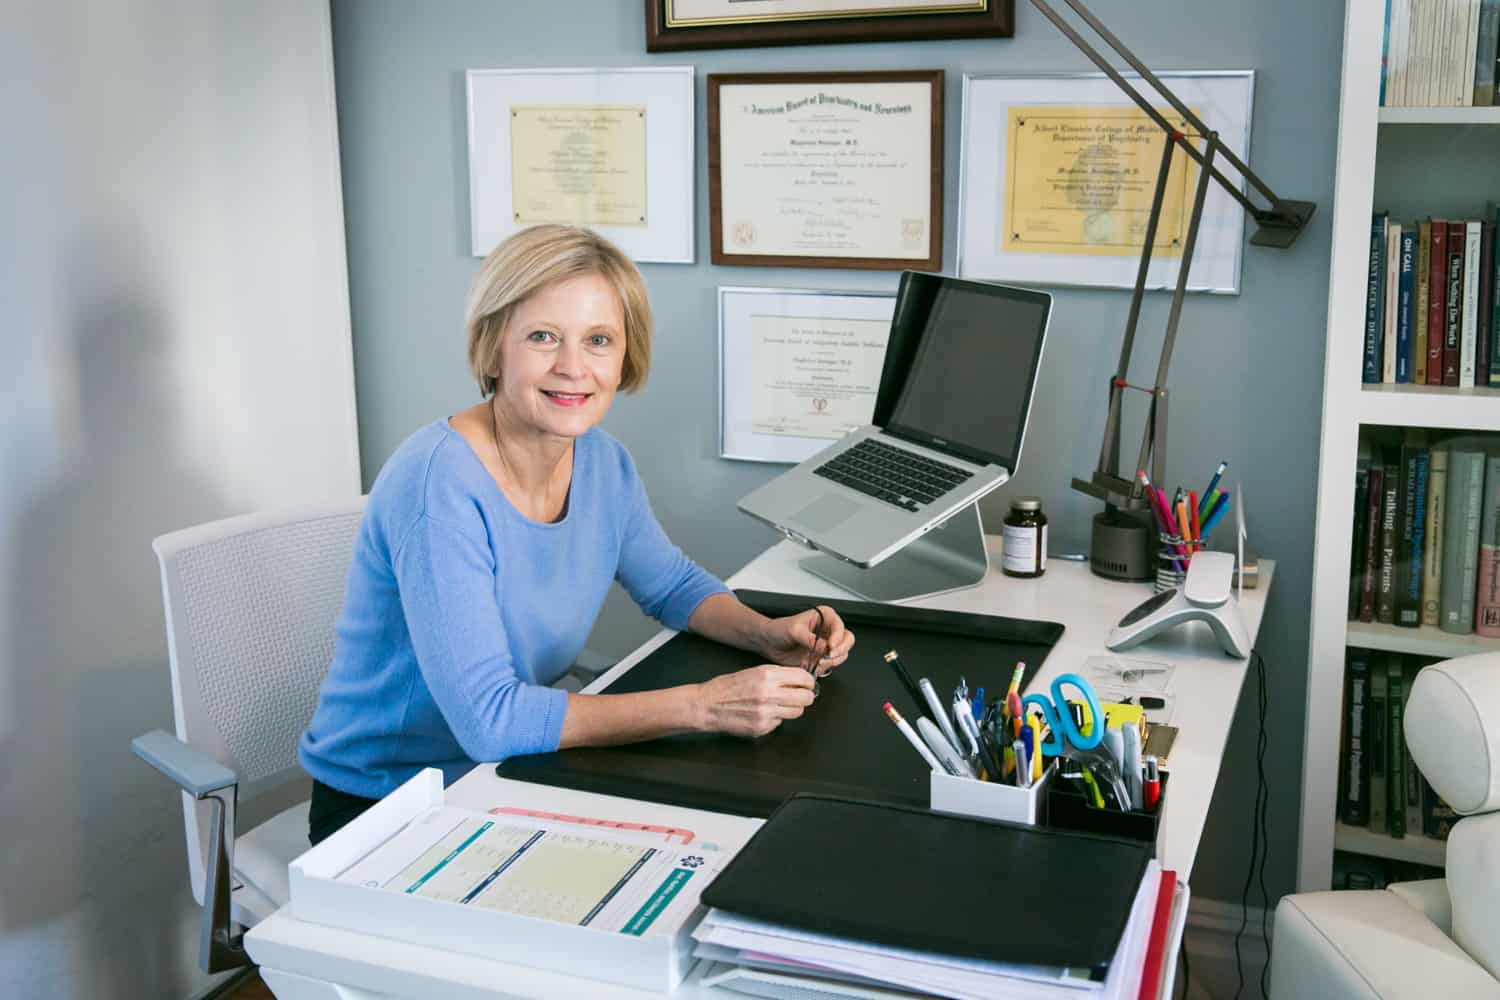 Professional portraits of a psychiatrist smiling at her desk